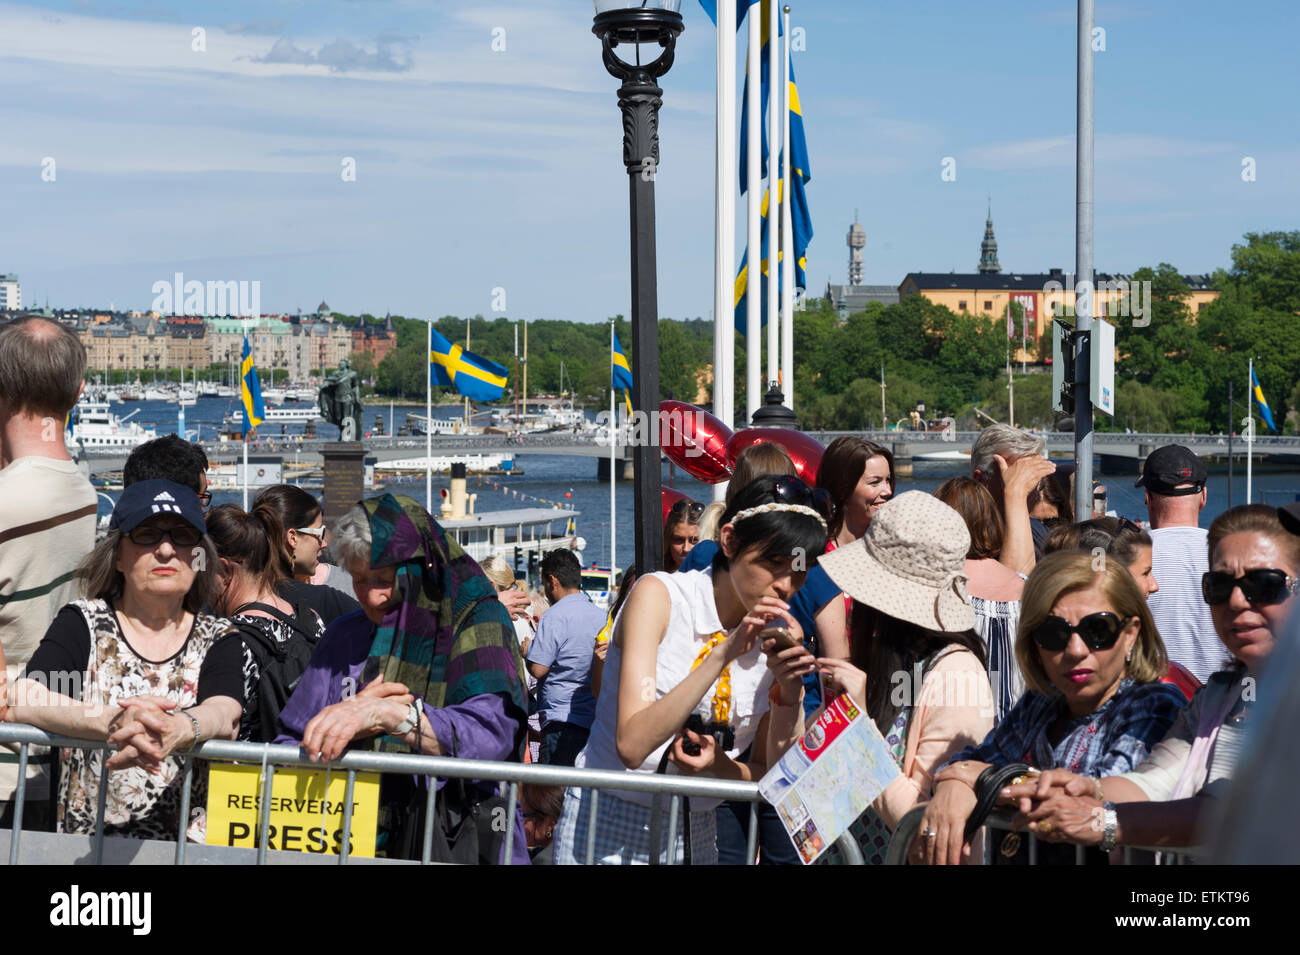 Stockholm, Sweden, June 13, 2015. The wedding of HRH Prince Carl Philip and Princess Sofia, Sweden. Long wait and - Stock Image